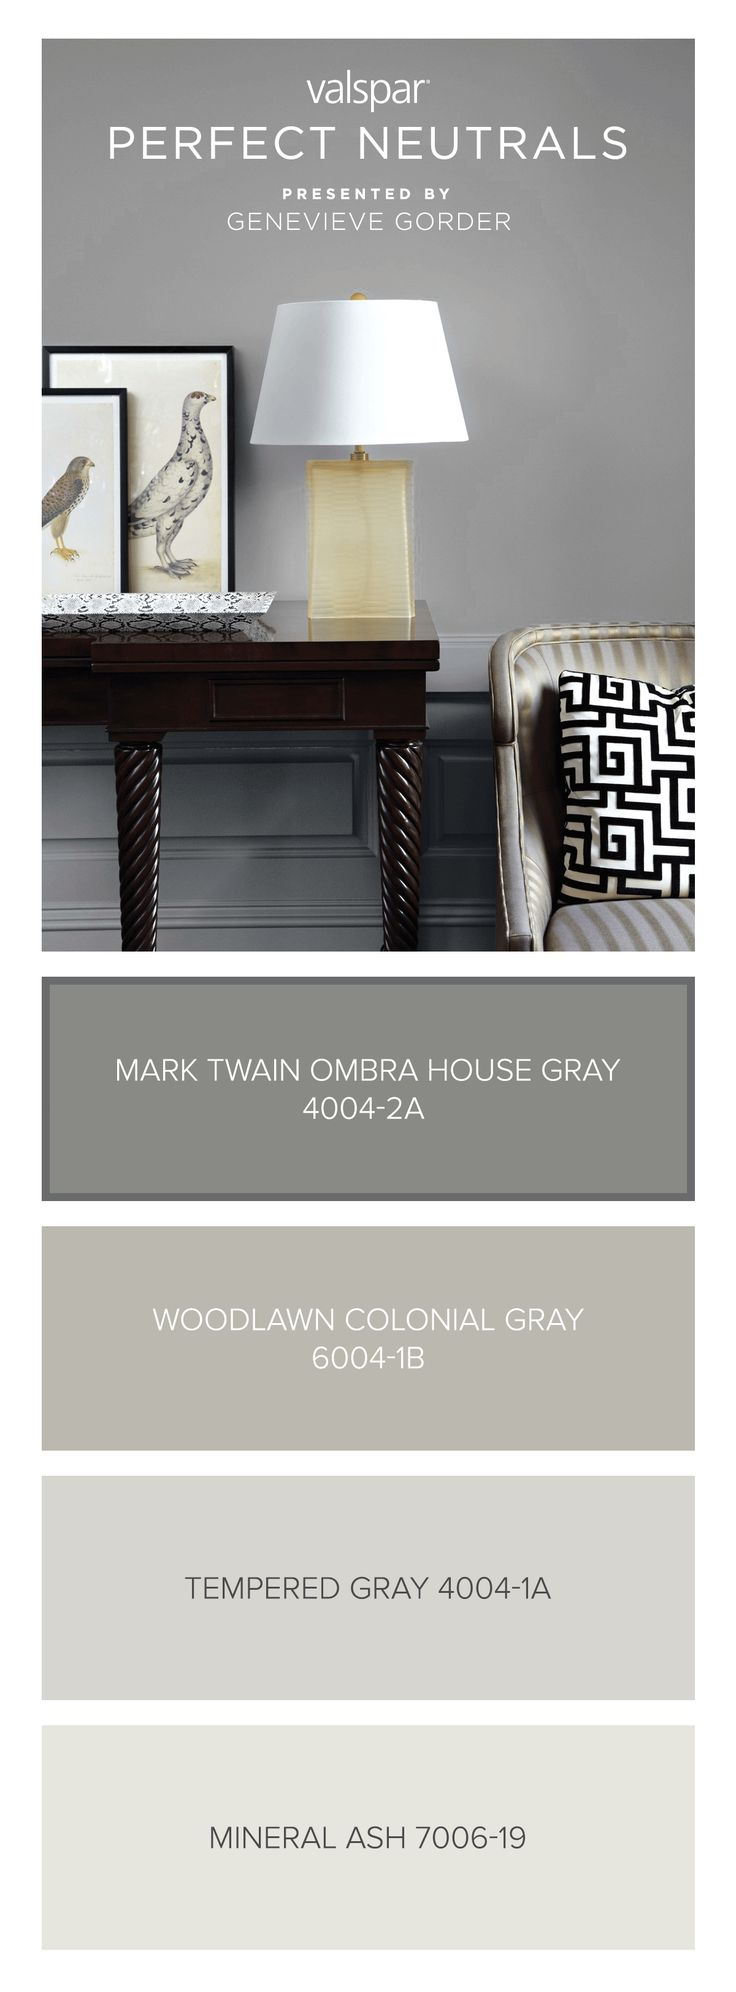 Heres A Tip From Genevieve Gorder Mark Twain House Ombra Gray Is Dar